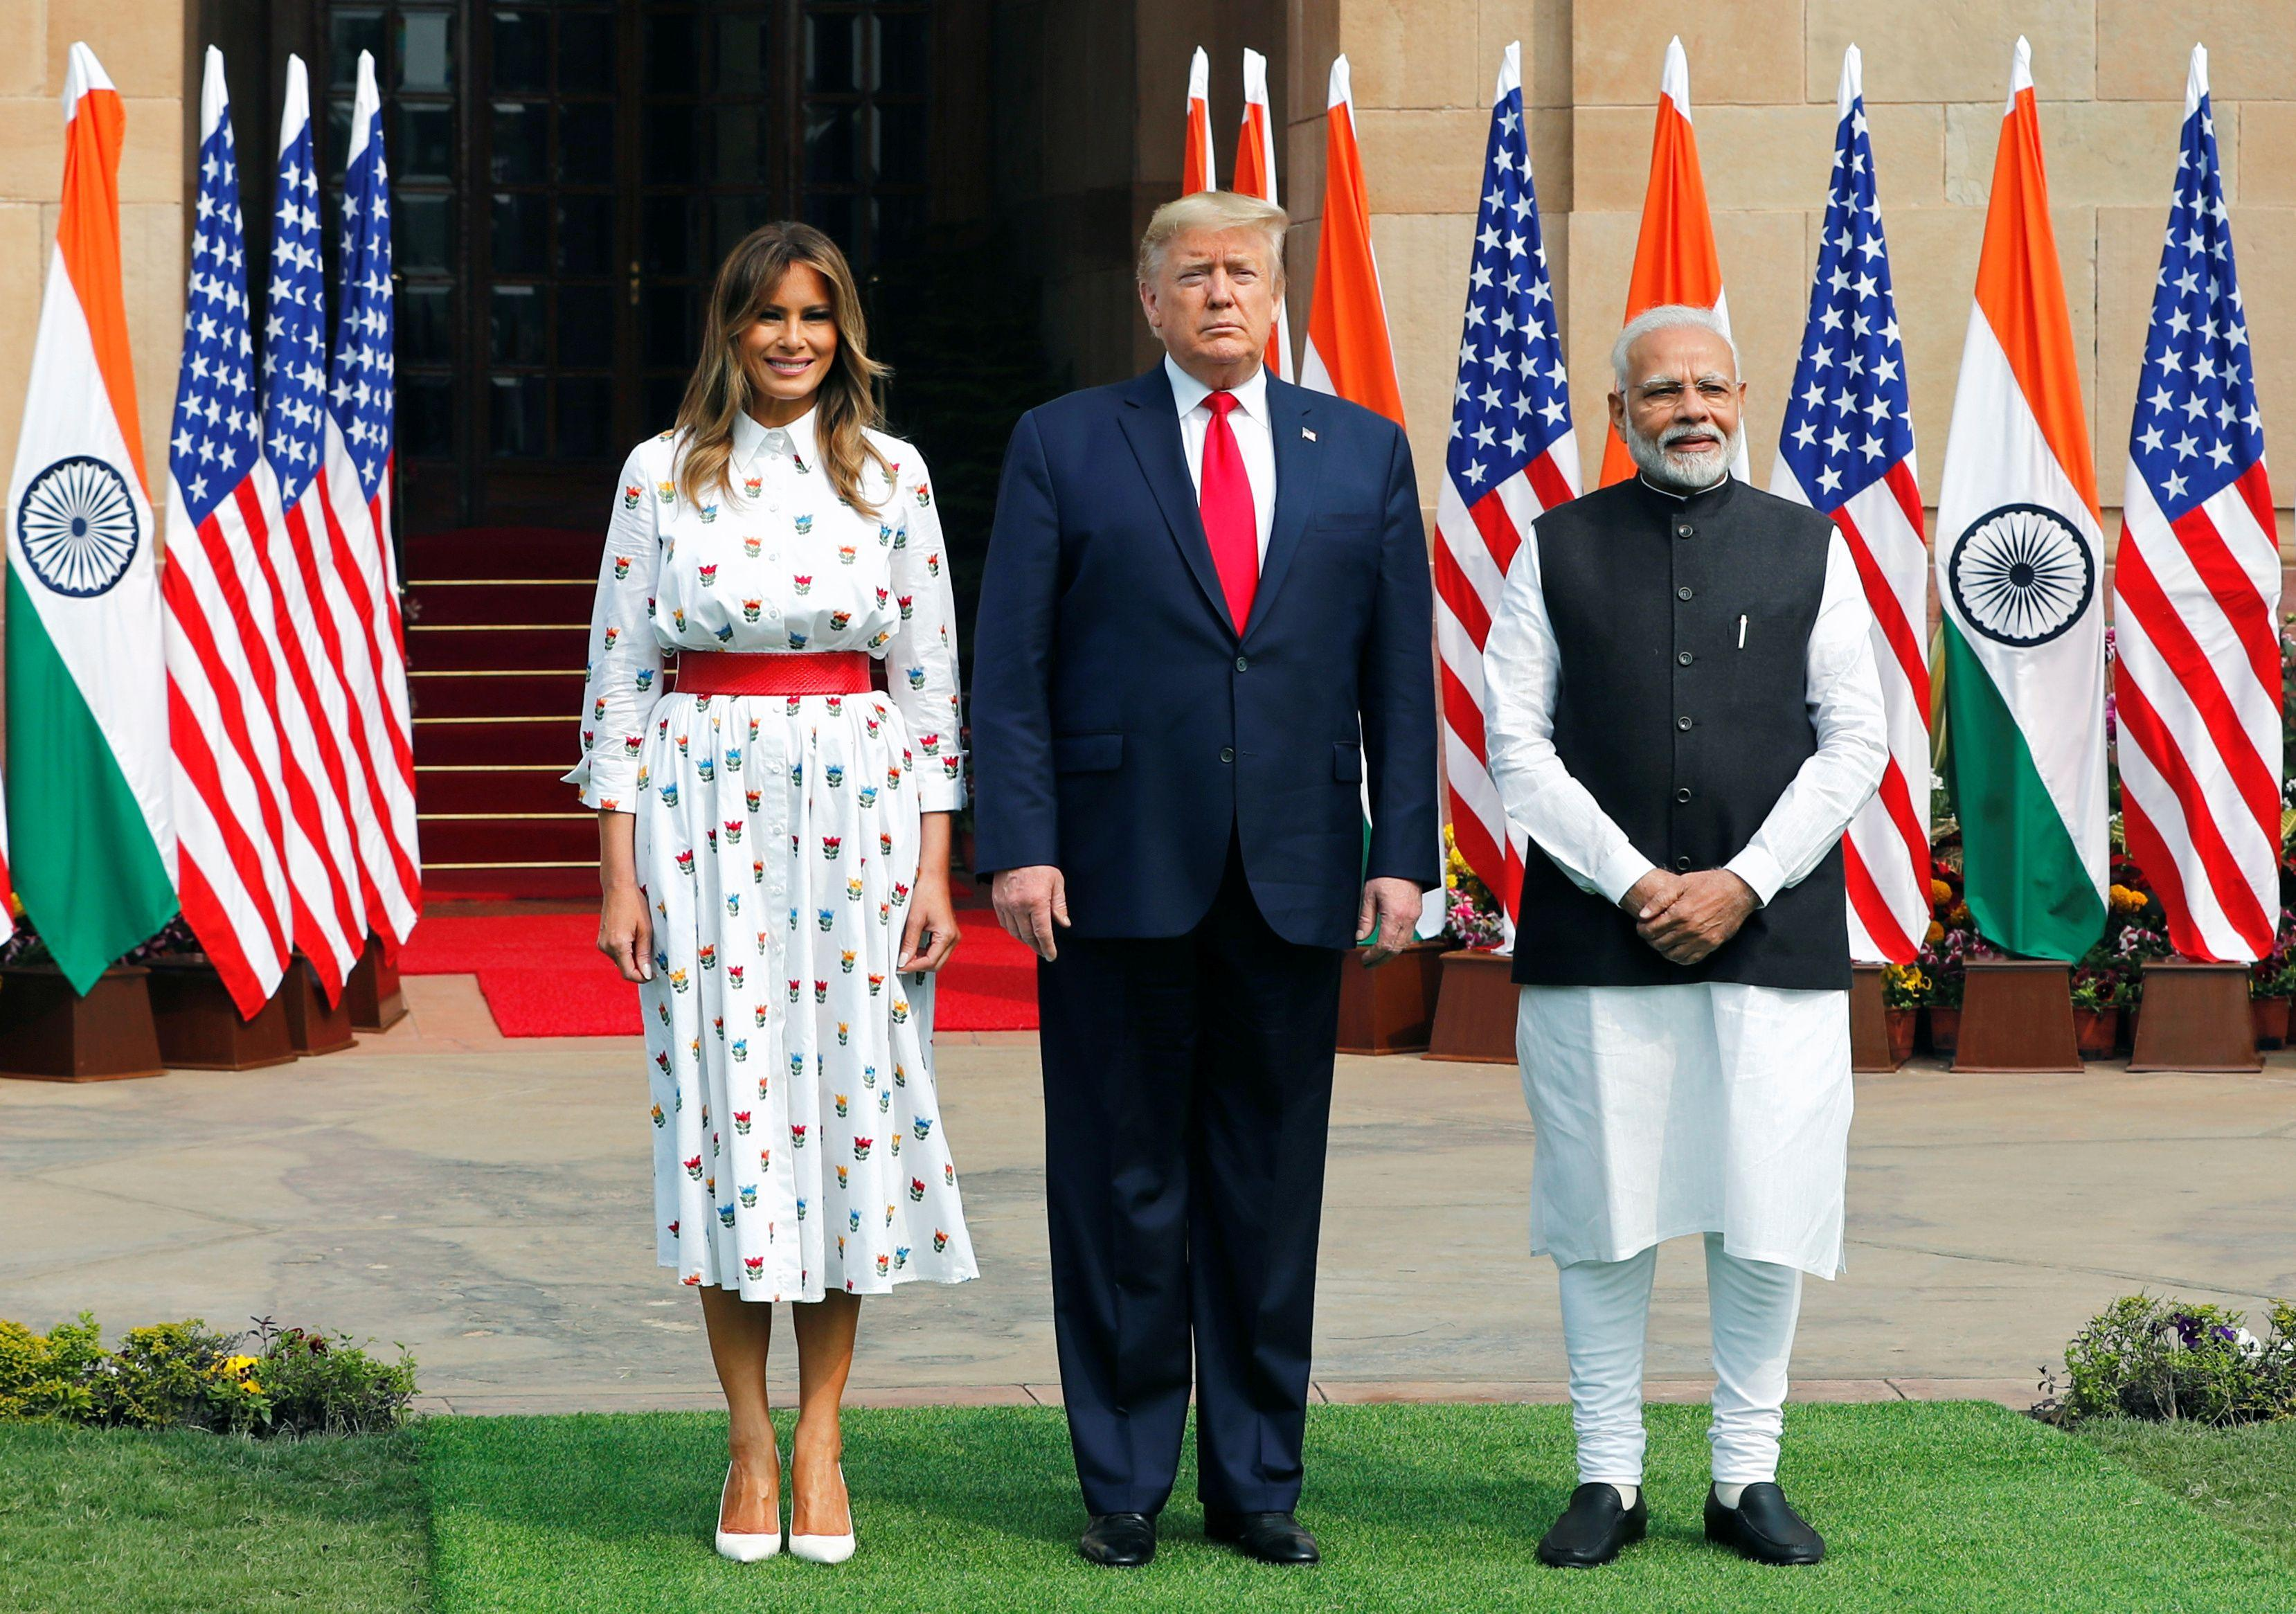 After huge welcome in India, Trump clinches $3 billion military equipment sale